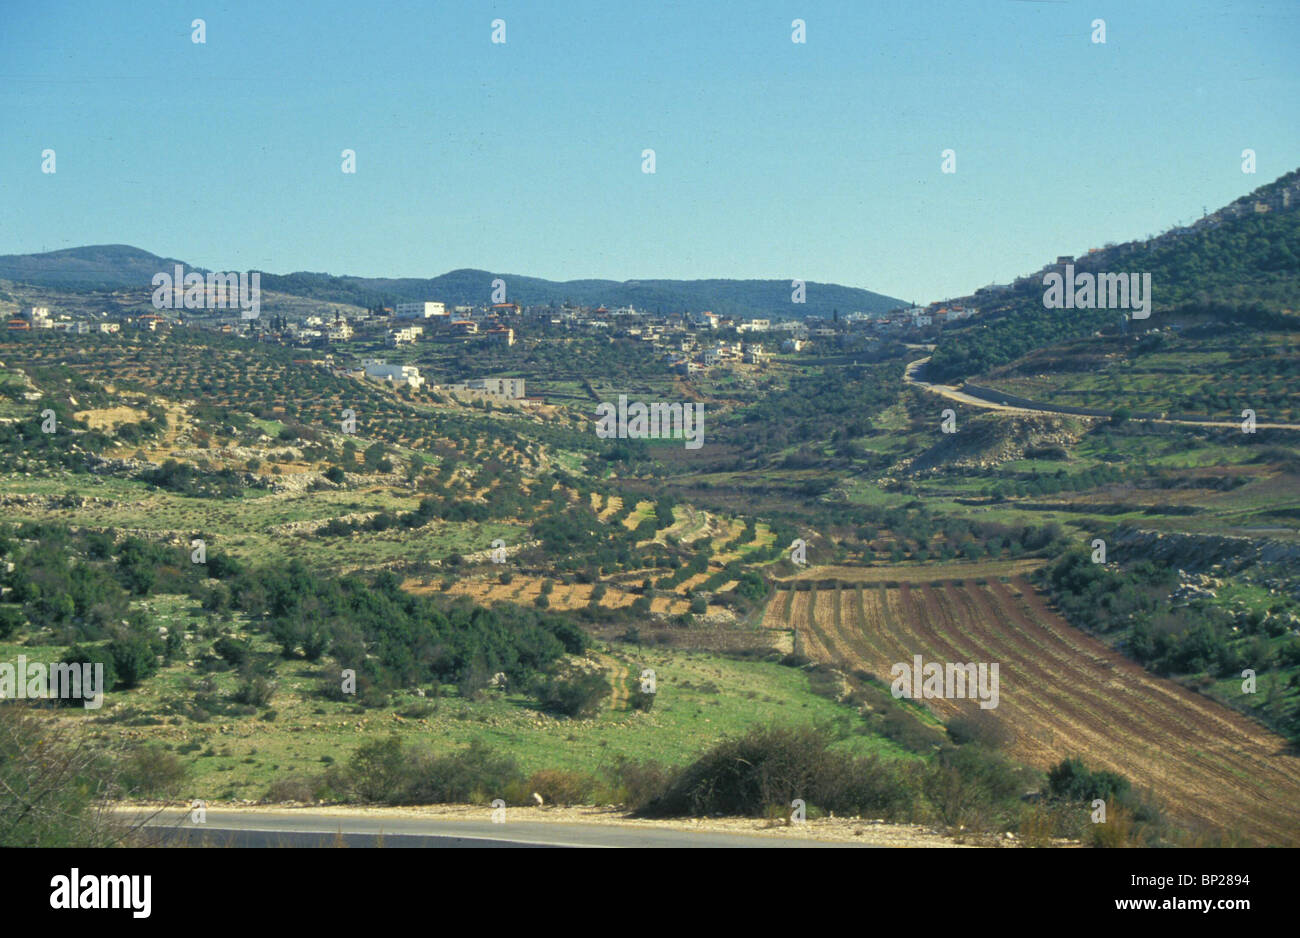 1953. UPPER GALILEE, - Stock Image